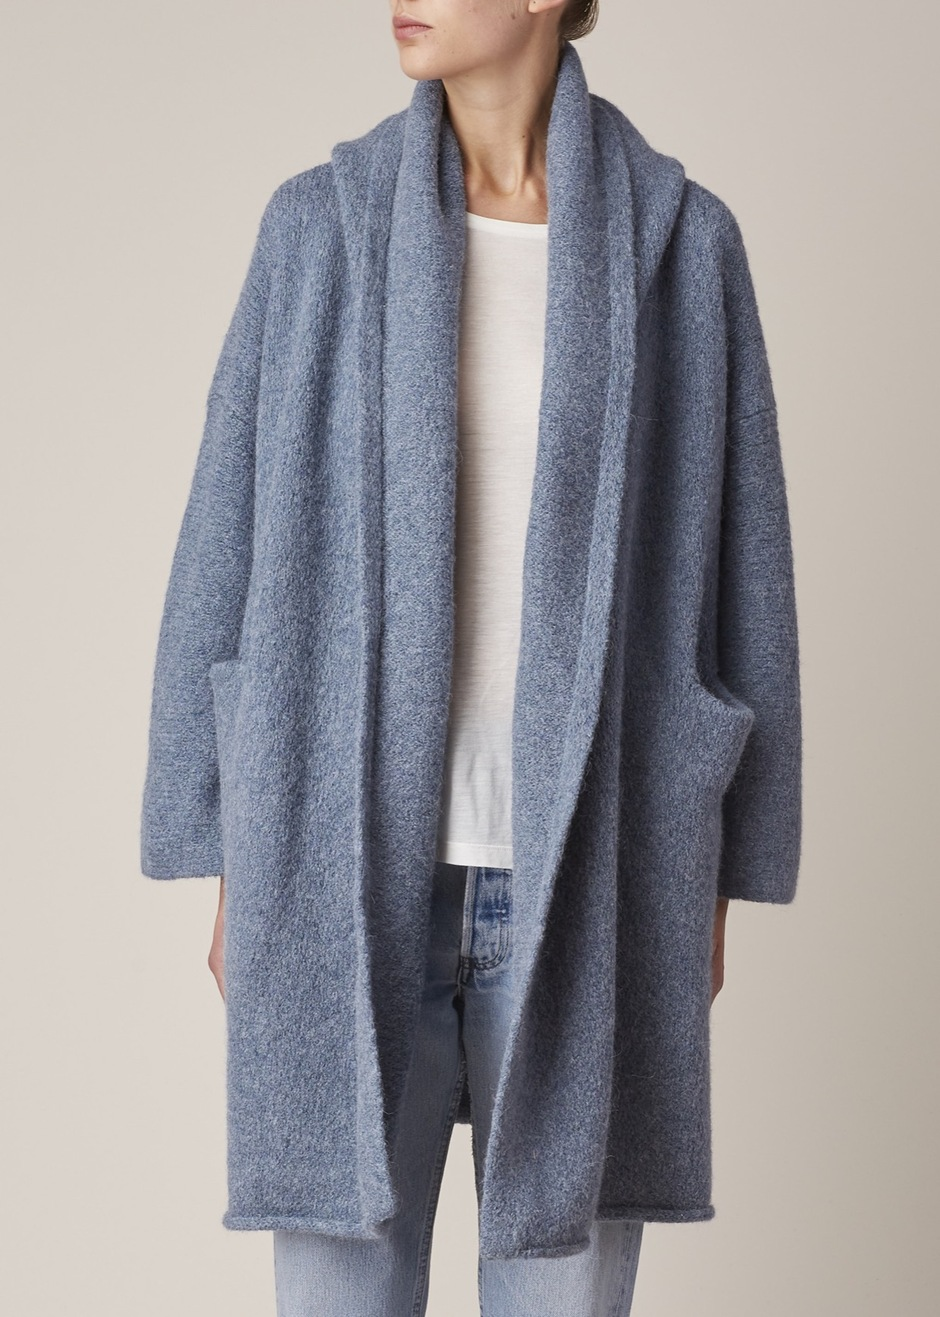 Lauren Manoogian CHAMBRAY CAPOTE COAT via treschicnow.com